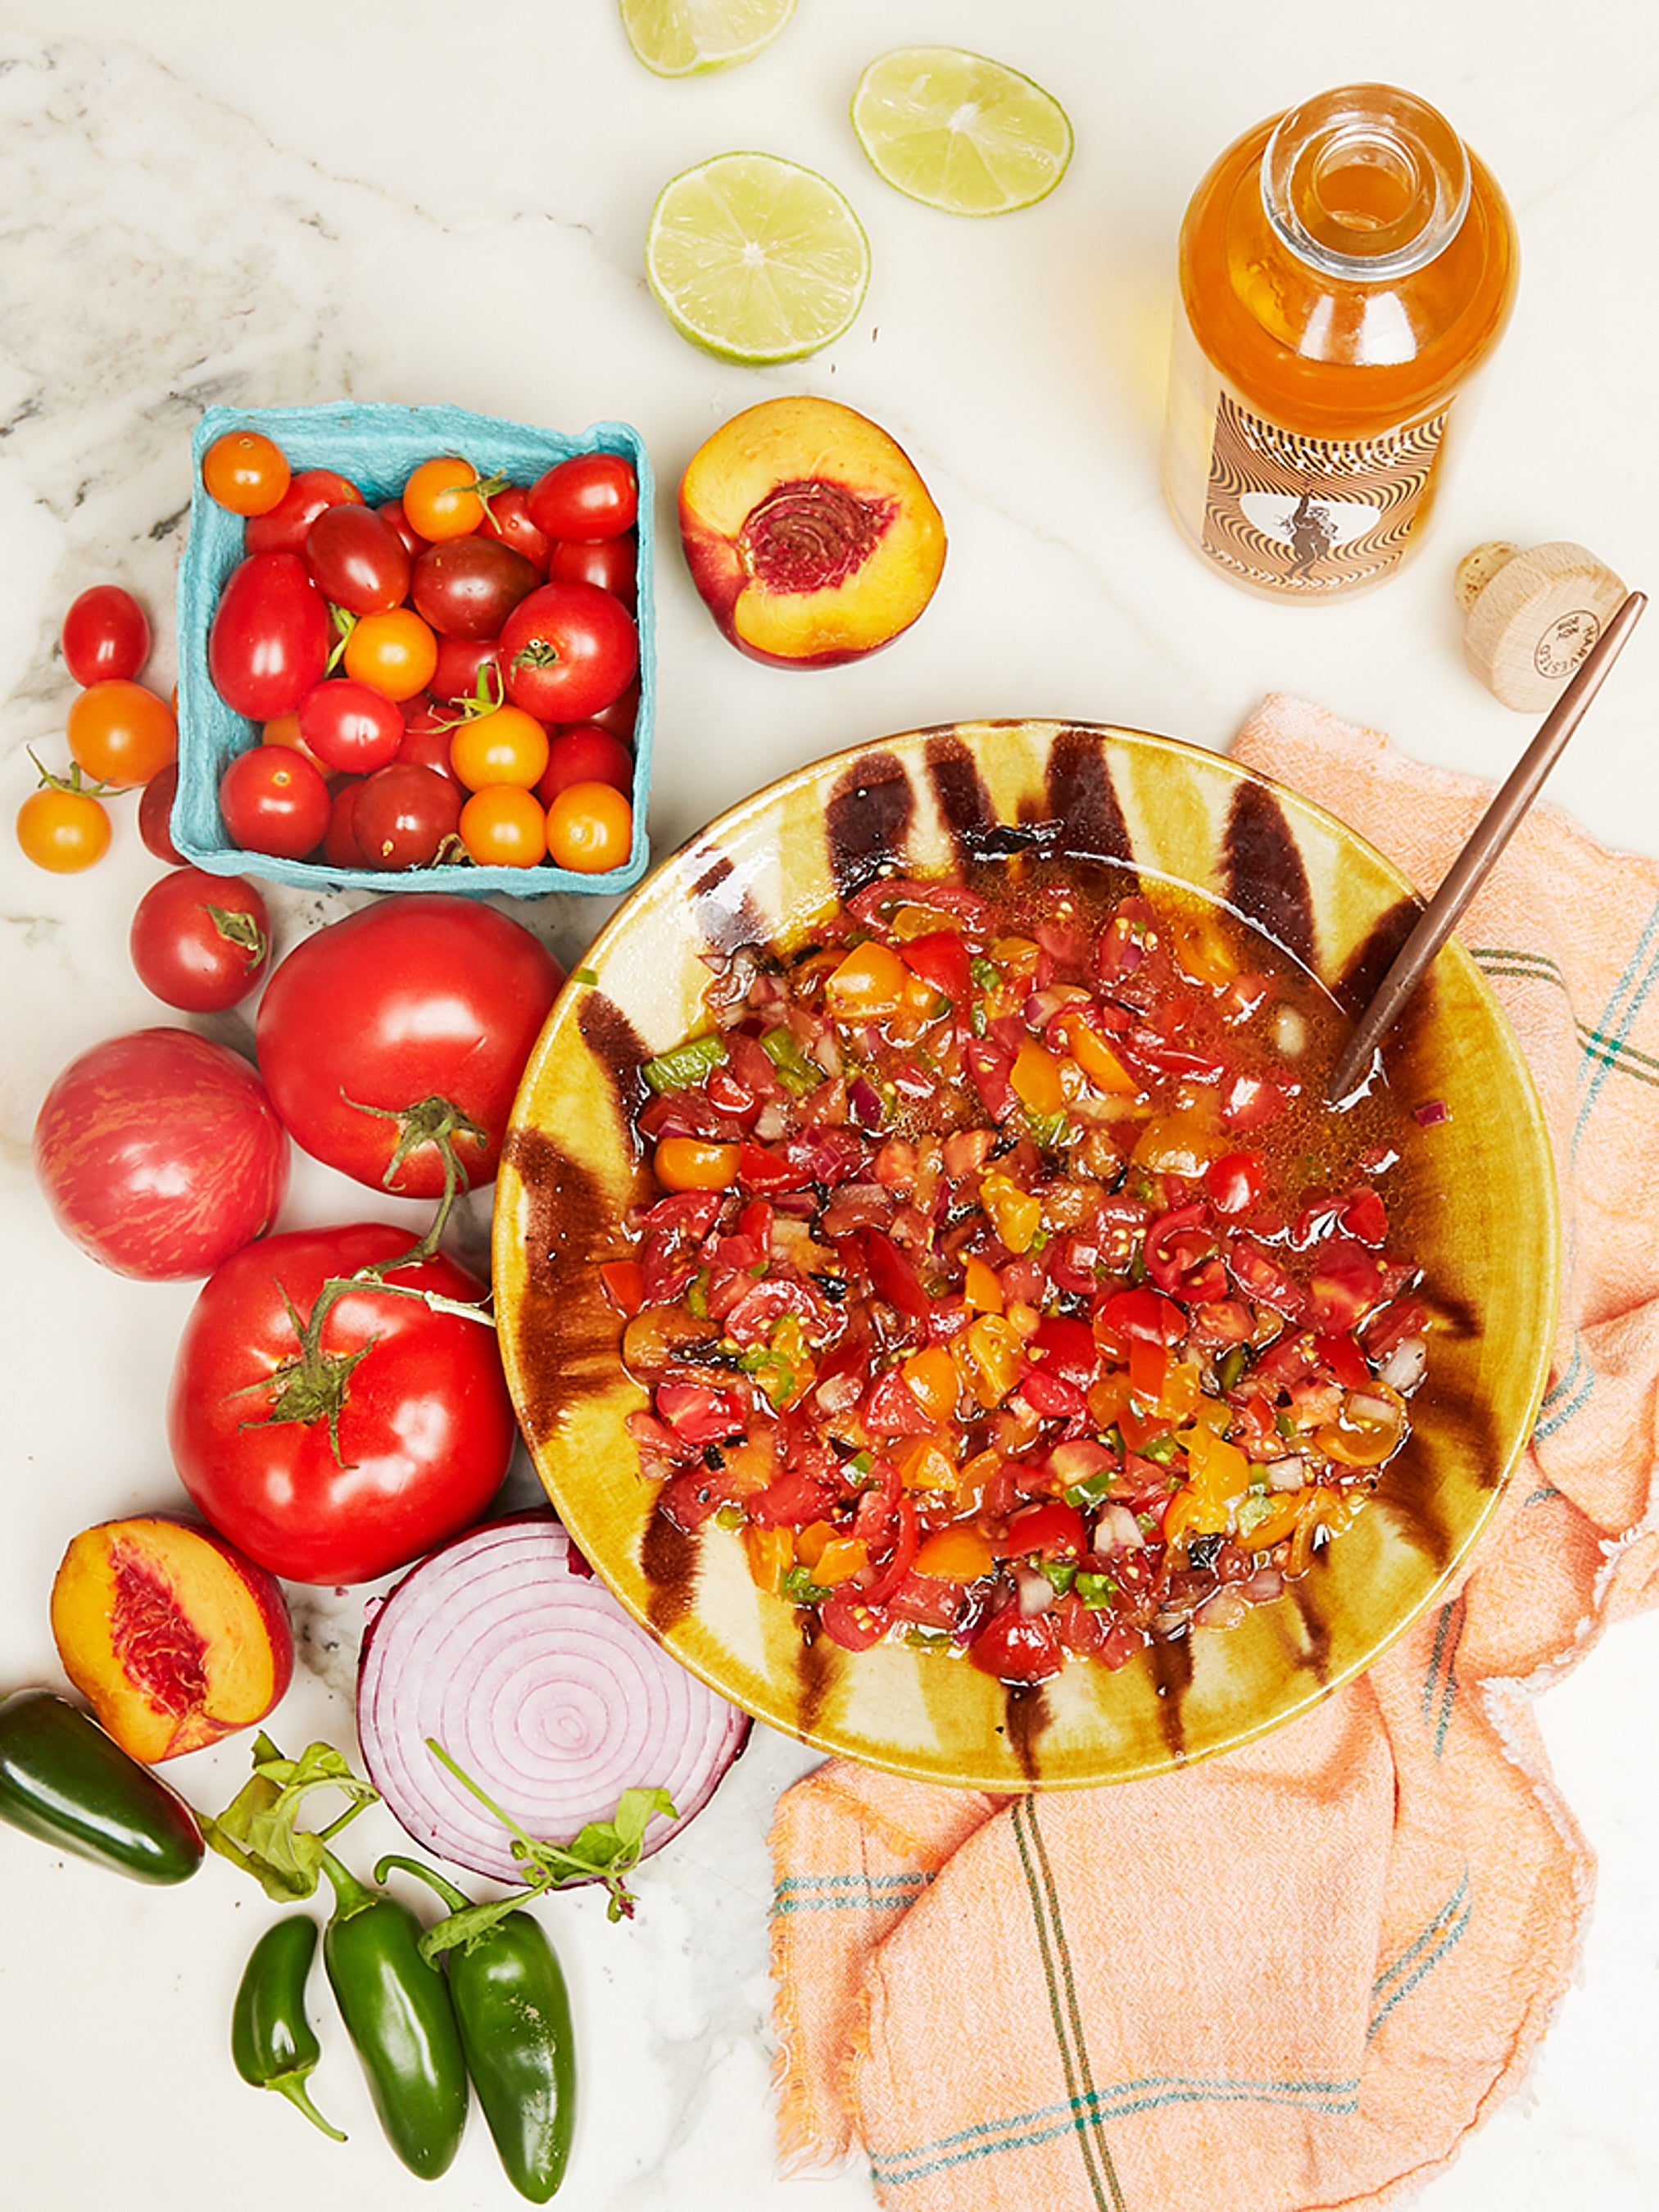 Summer Sauces Are the Antidote to Vegetable Fatigue